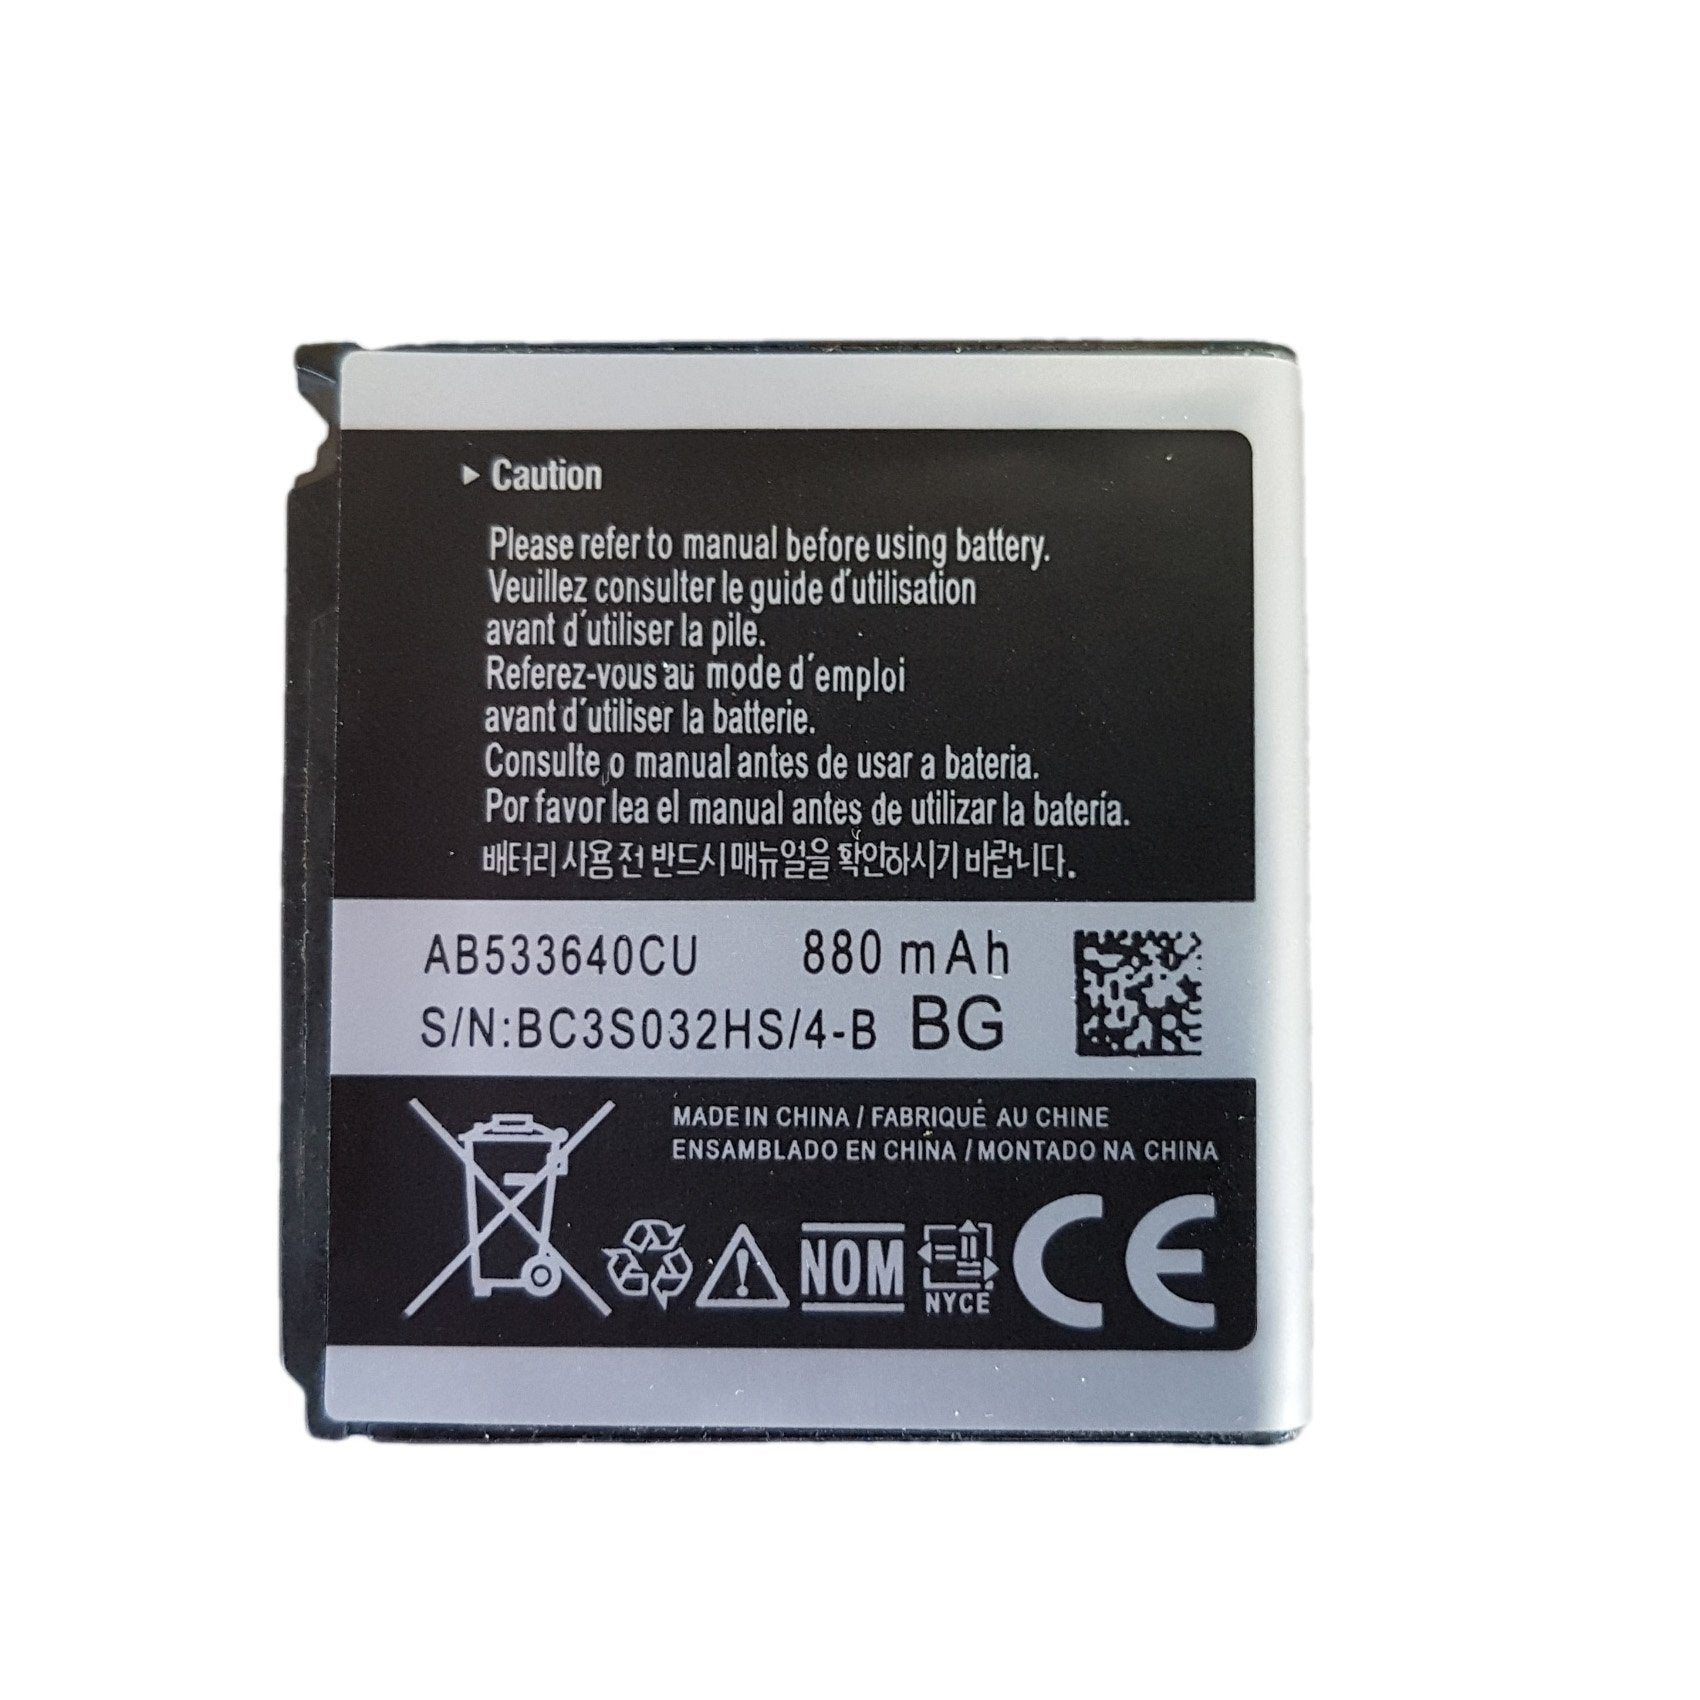 Original Samsung Battery AB533640CU 880 mAh for Helio Mysto SPH-A523, SGH-S366 Pic0